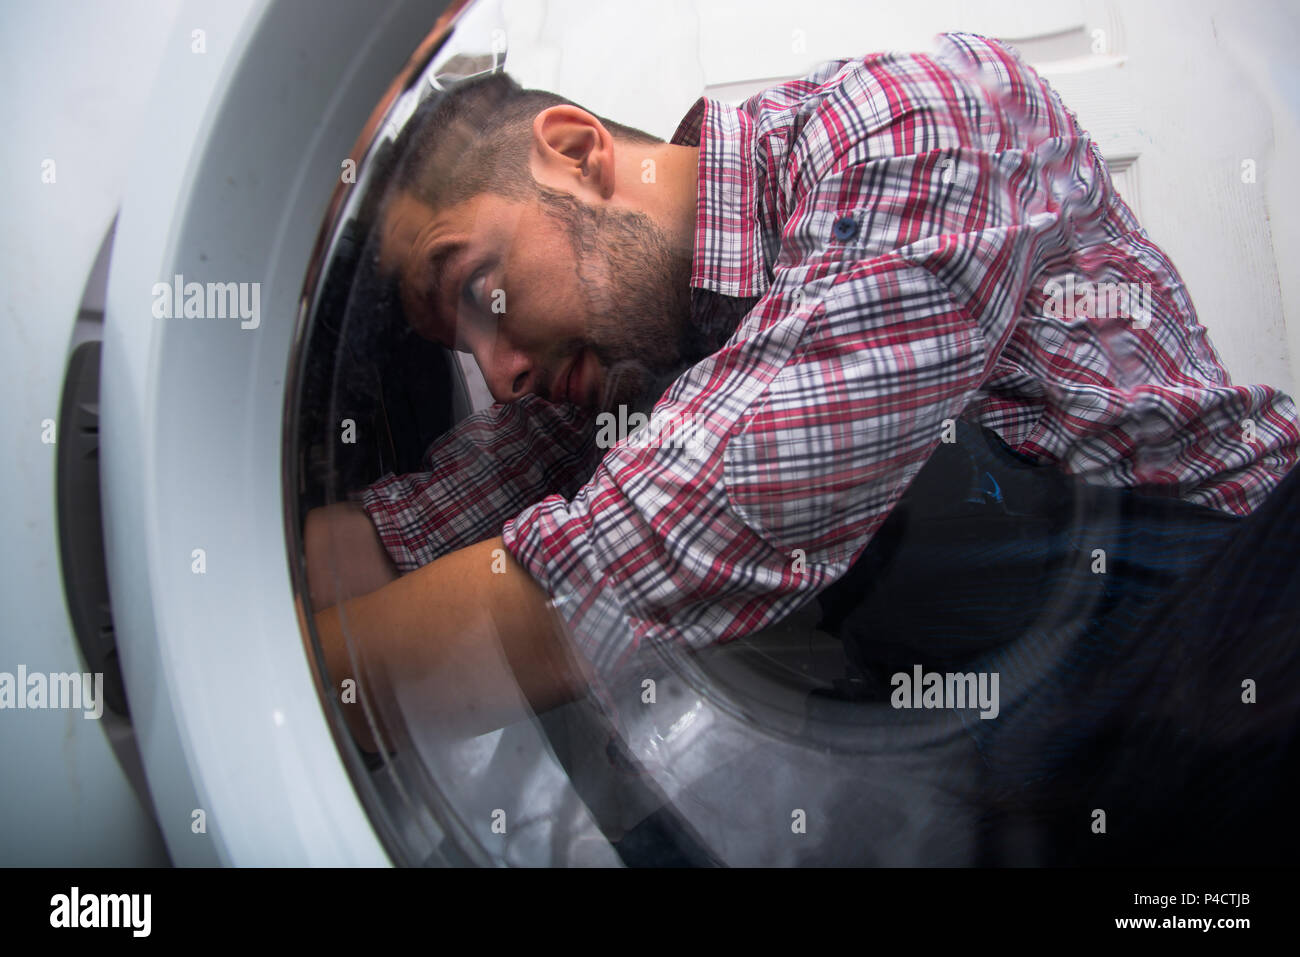 Repair man fixing the washing machine in the bathroom - Stock Image